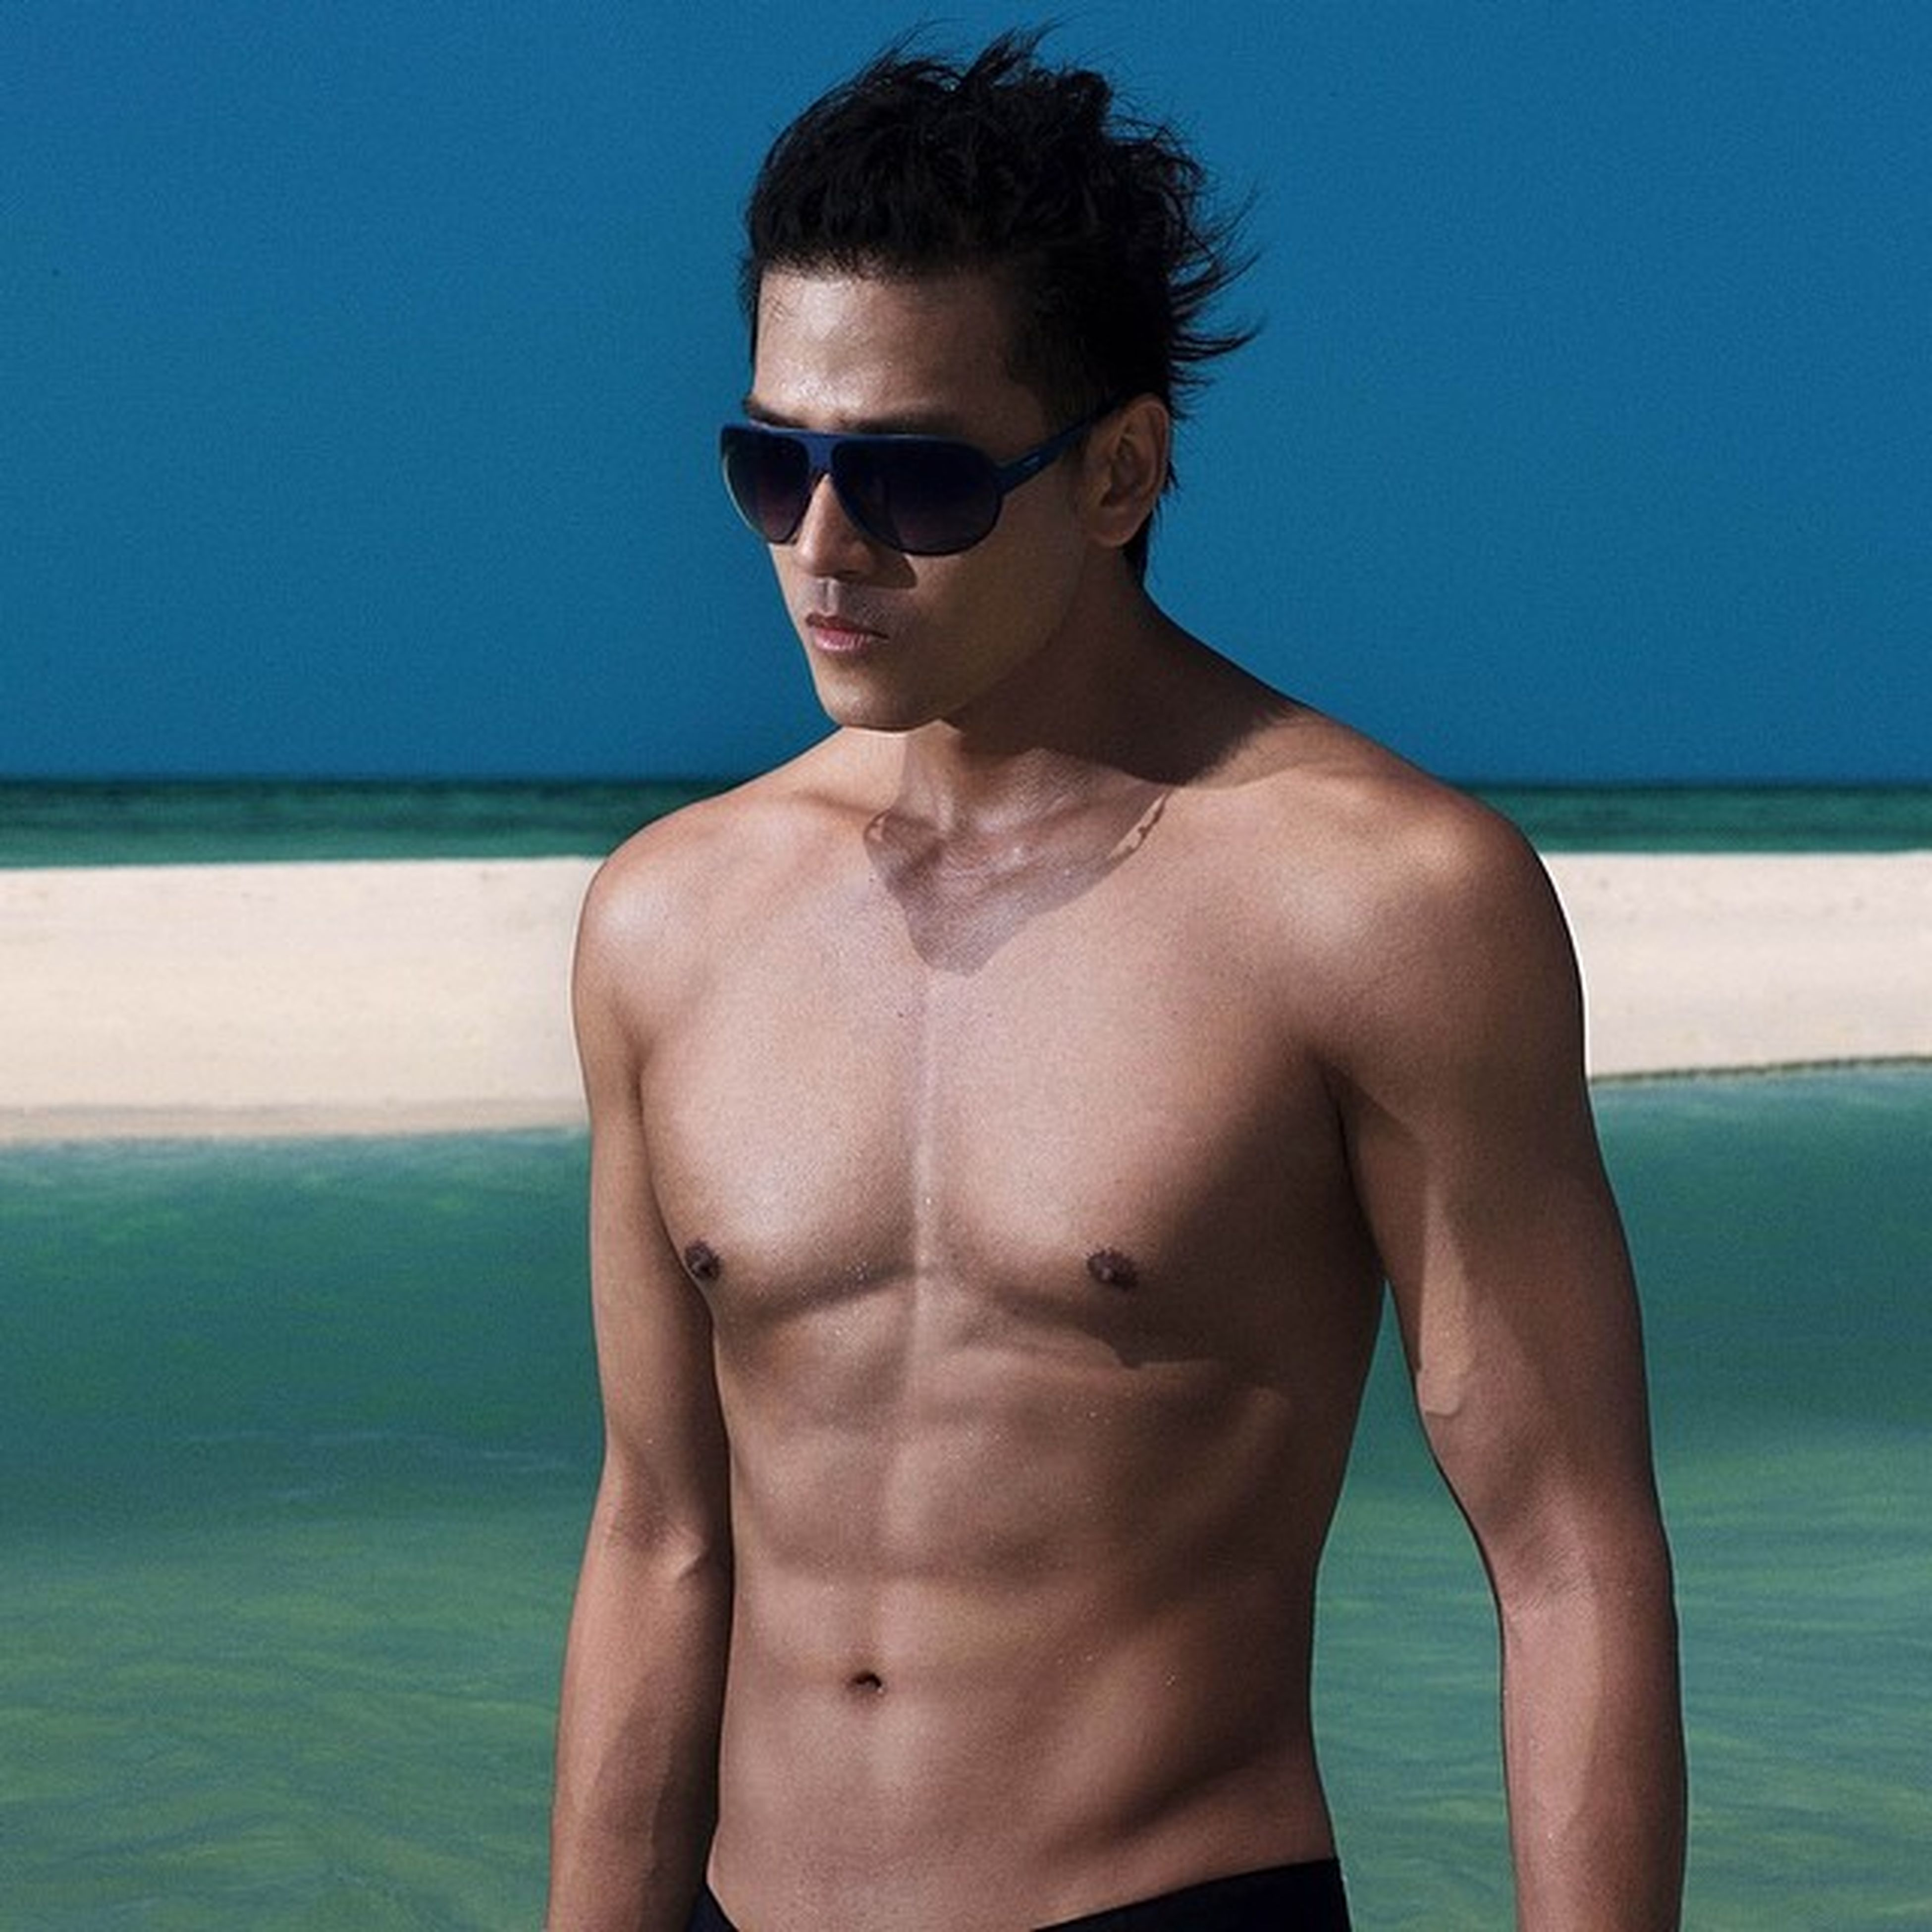 sea, young adult, water, person, young men, lifestyles, shirtless, looking at camera, portrait, leisure activity, horizon over water, beach, clear sky, front view, headshot, copy space, sunglasses, mid adult